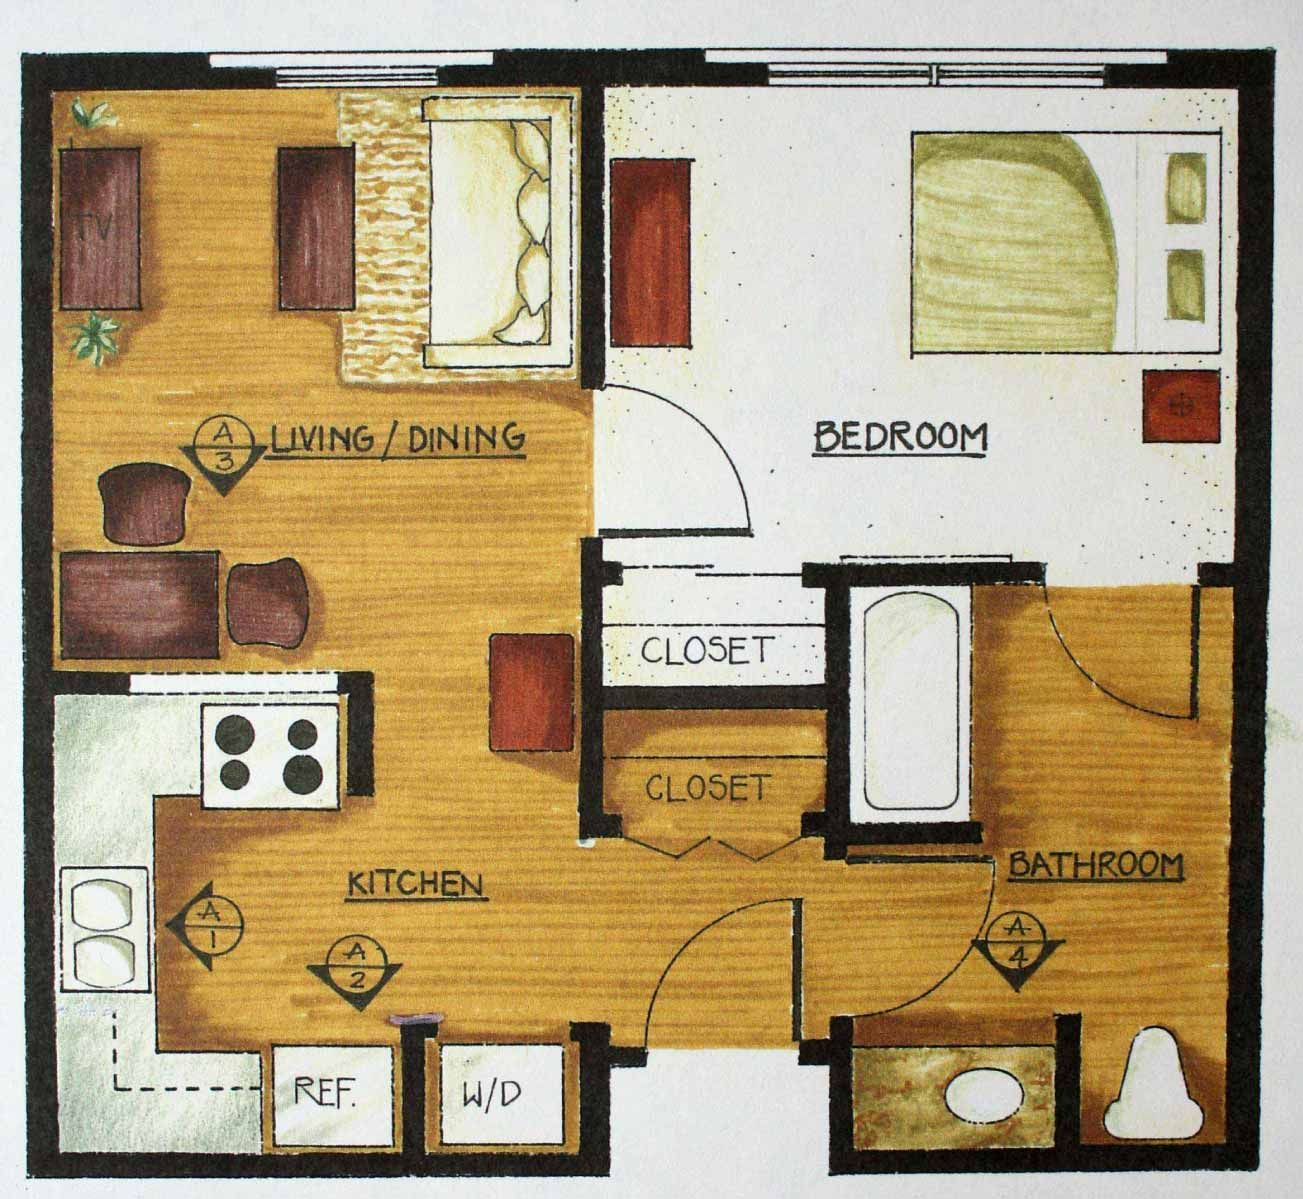 simple floor plan nice for mother in law has 2 closets simple floor plan nice for mother in law has 2 closets